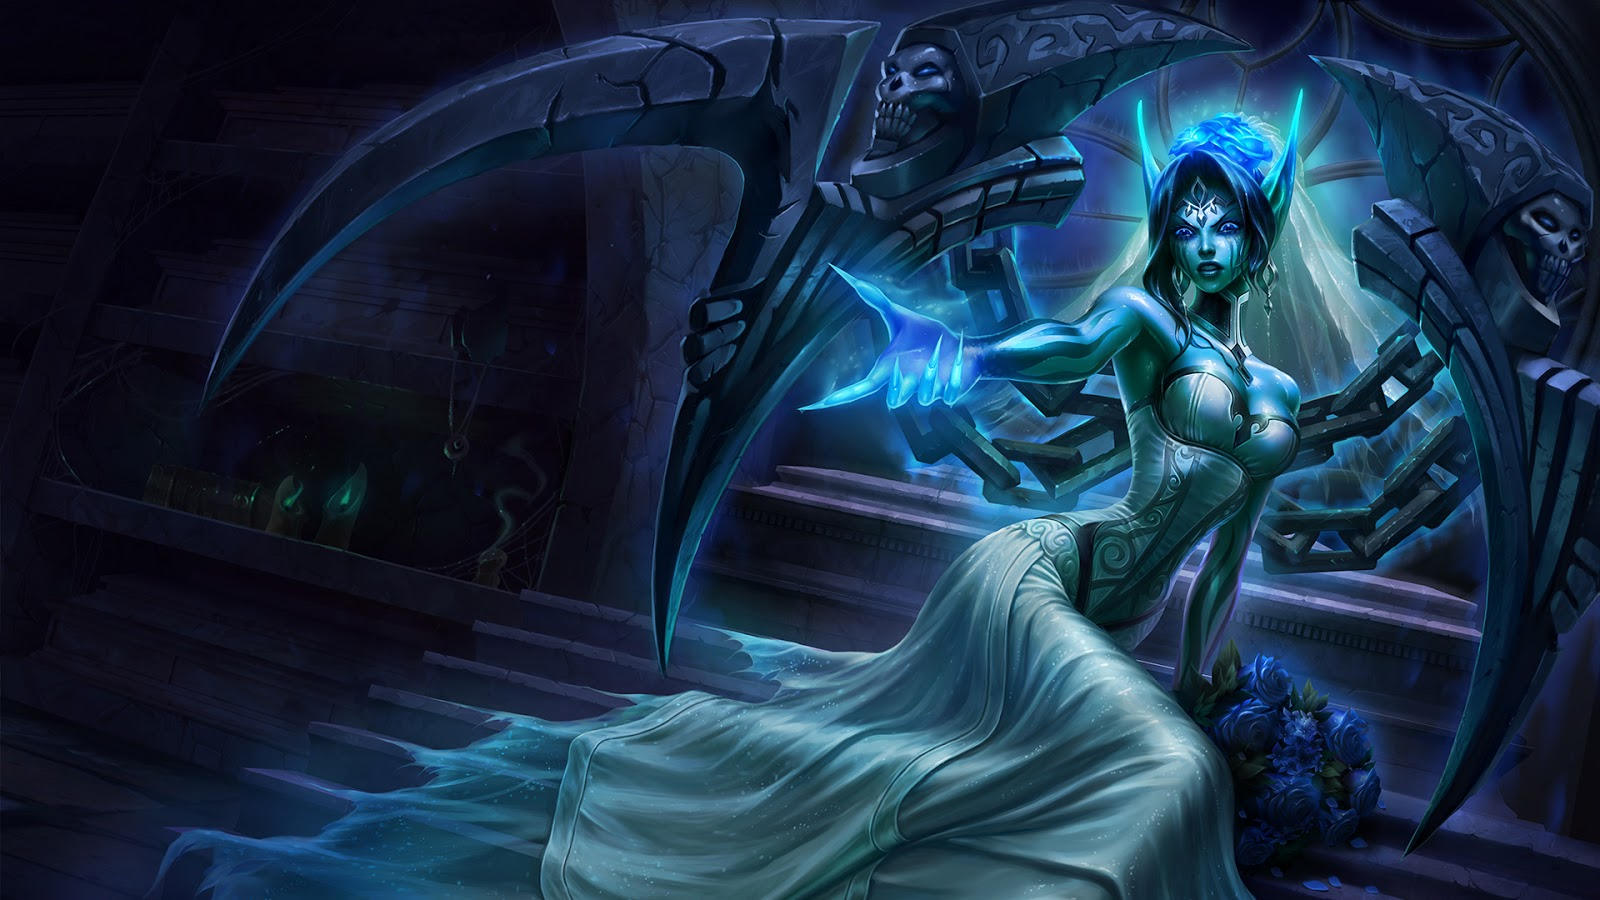 Surrender at 20: Ghost Bride Morgana haunting soon